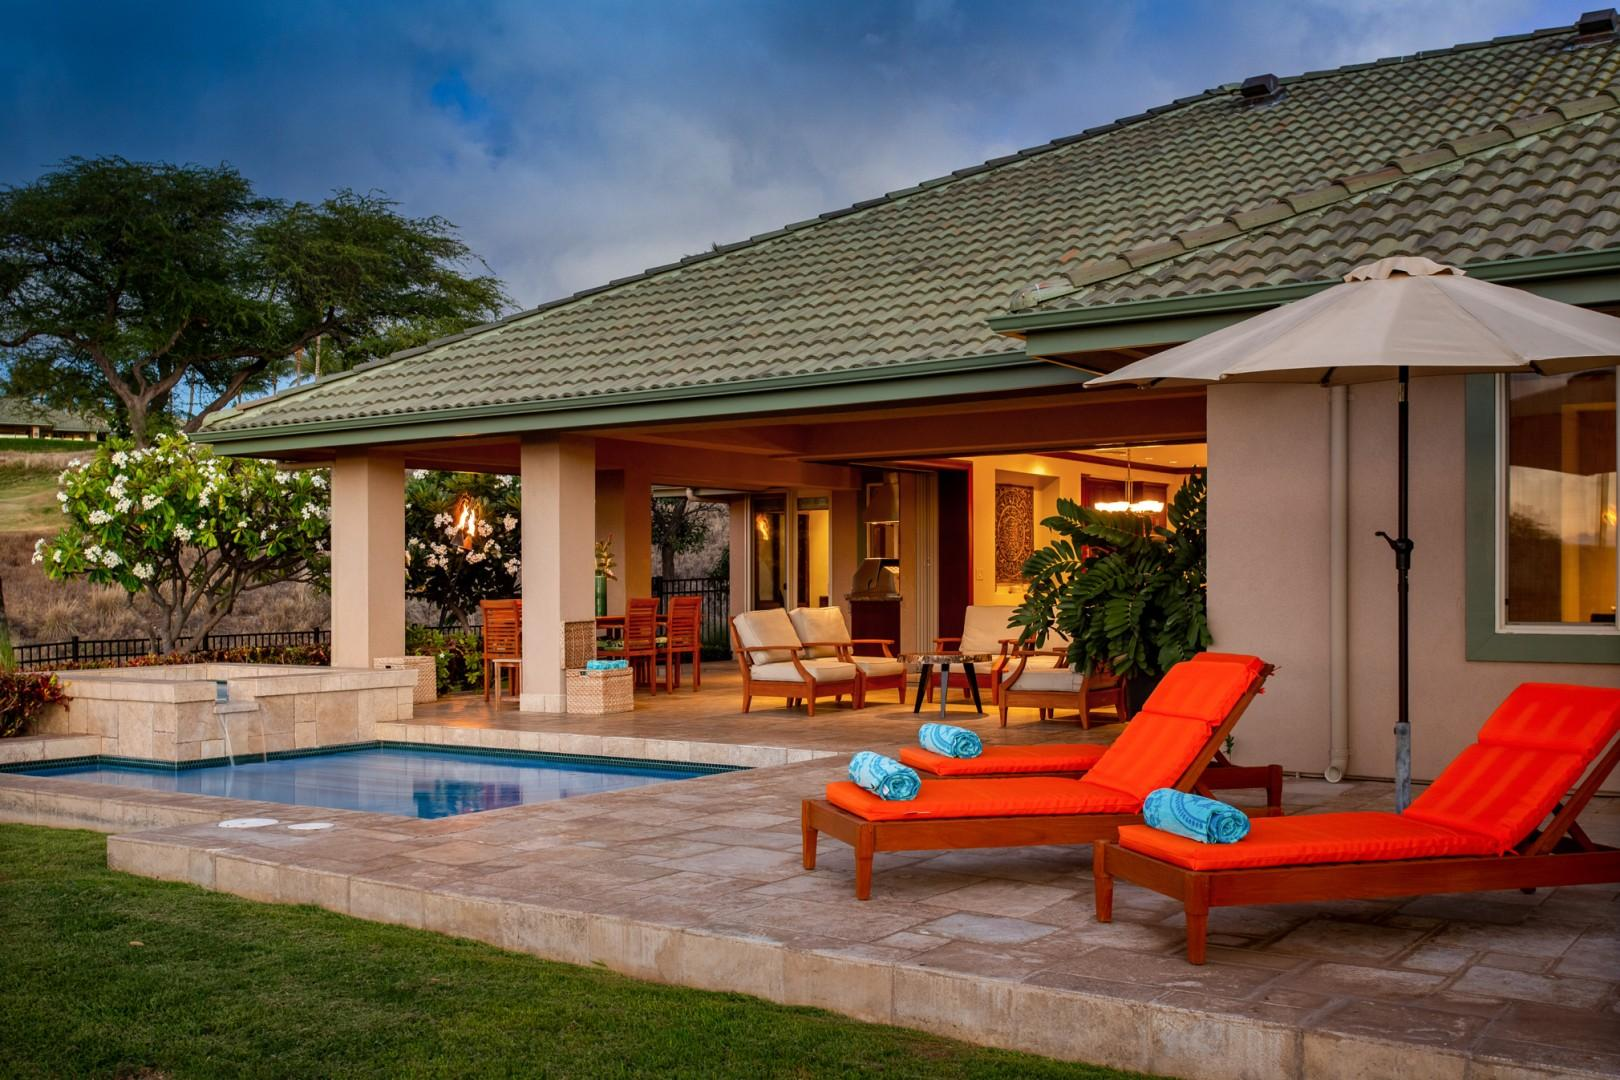 Alternate view of pool deck, lanai, and home's interior at sunset.